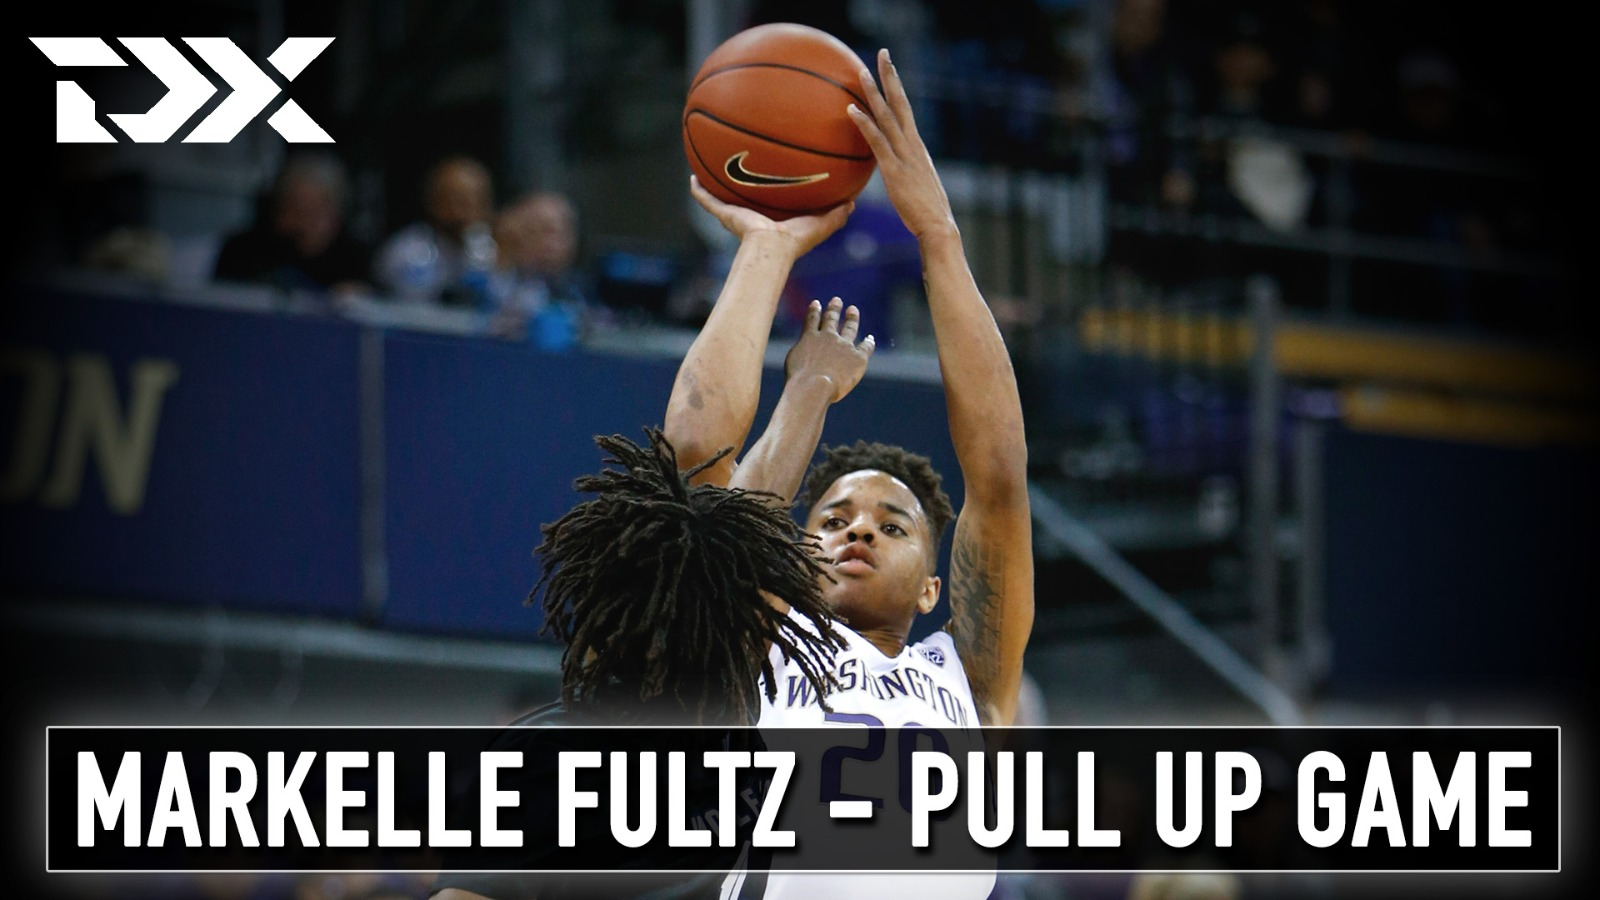 Markelle Fultz - Pull Up Game